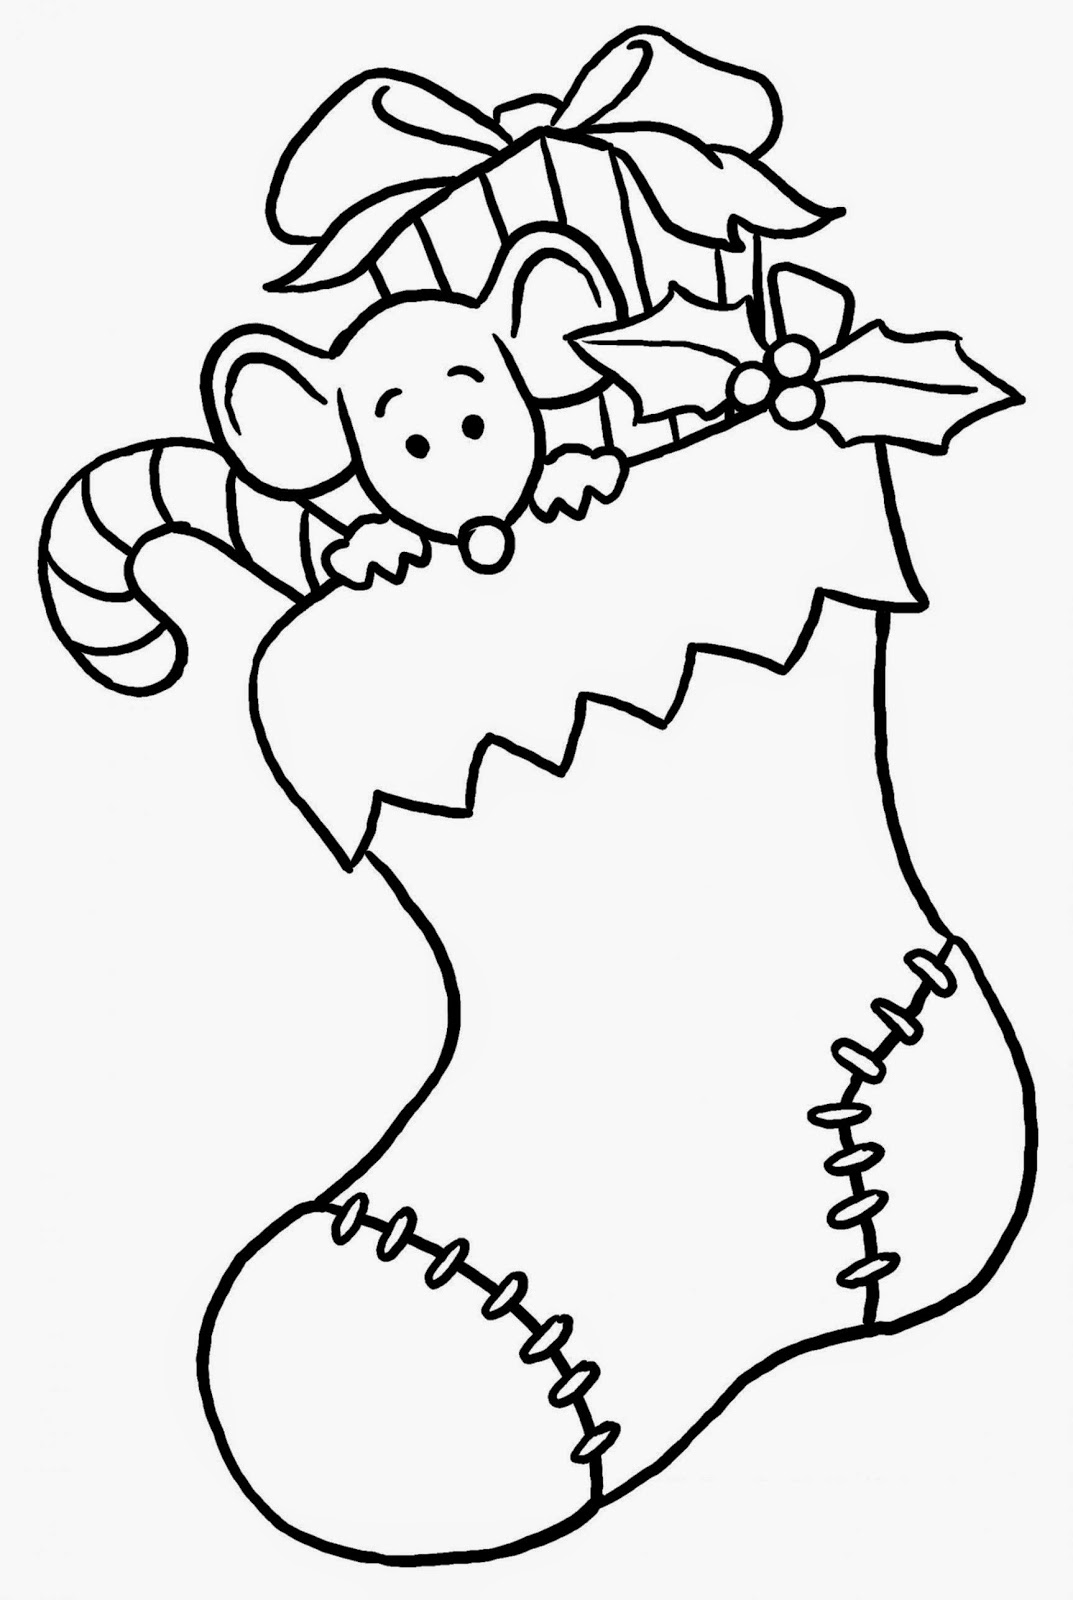 coloring book pages for preschool - photo#2